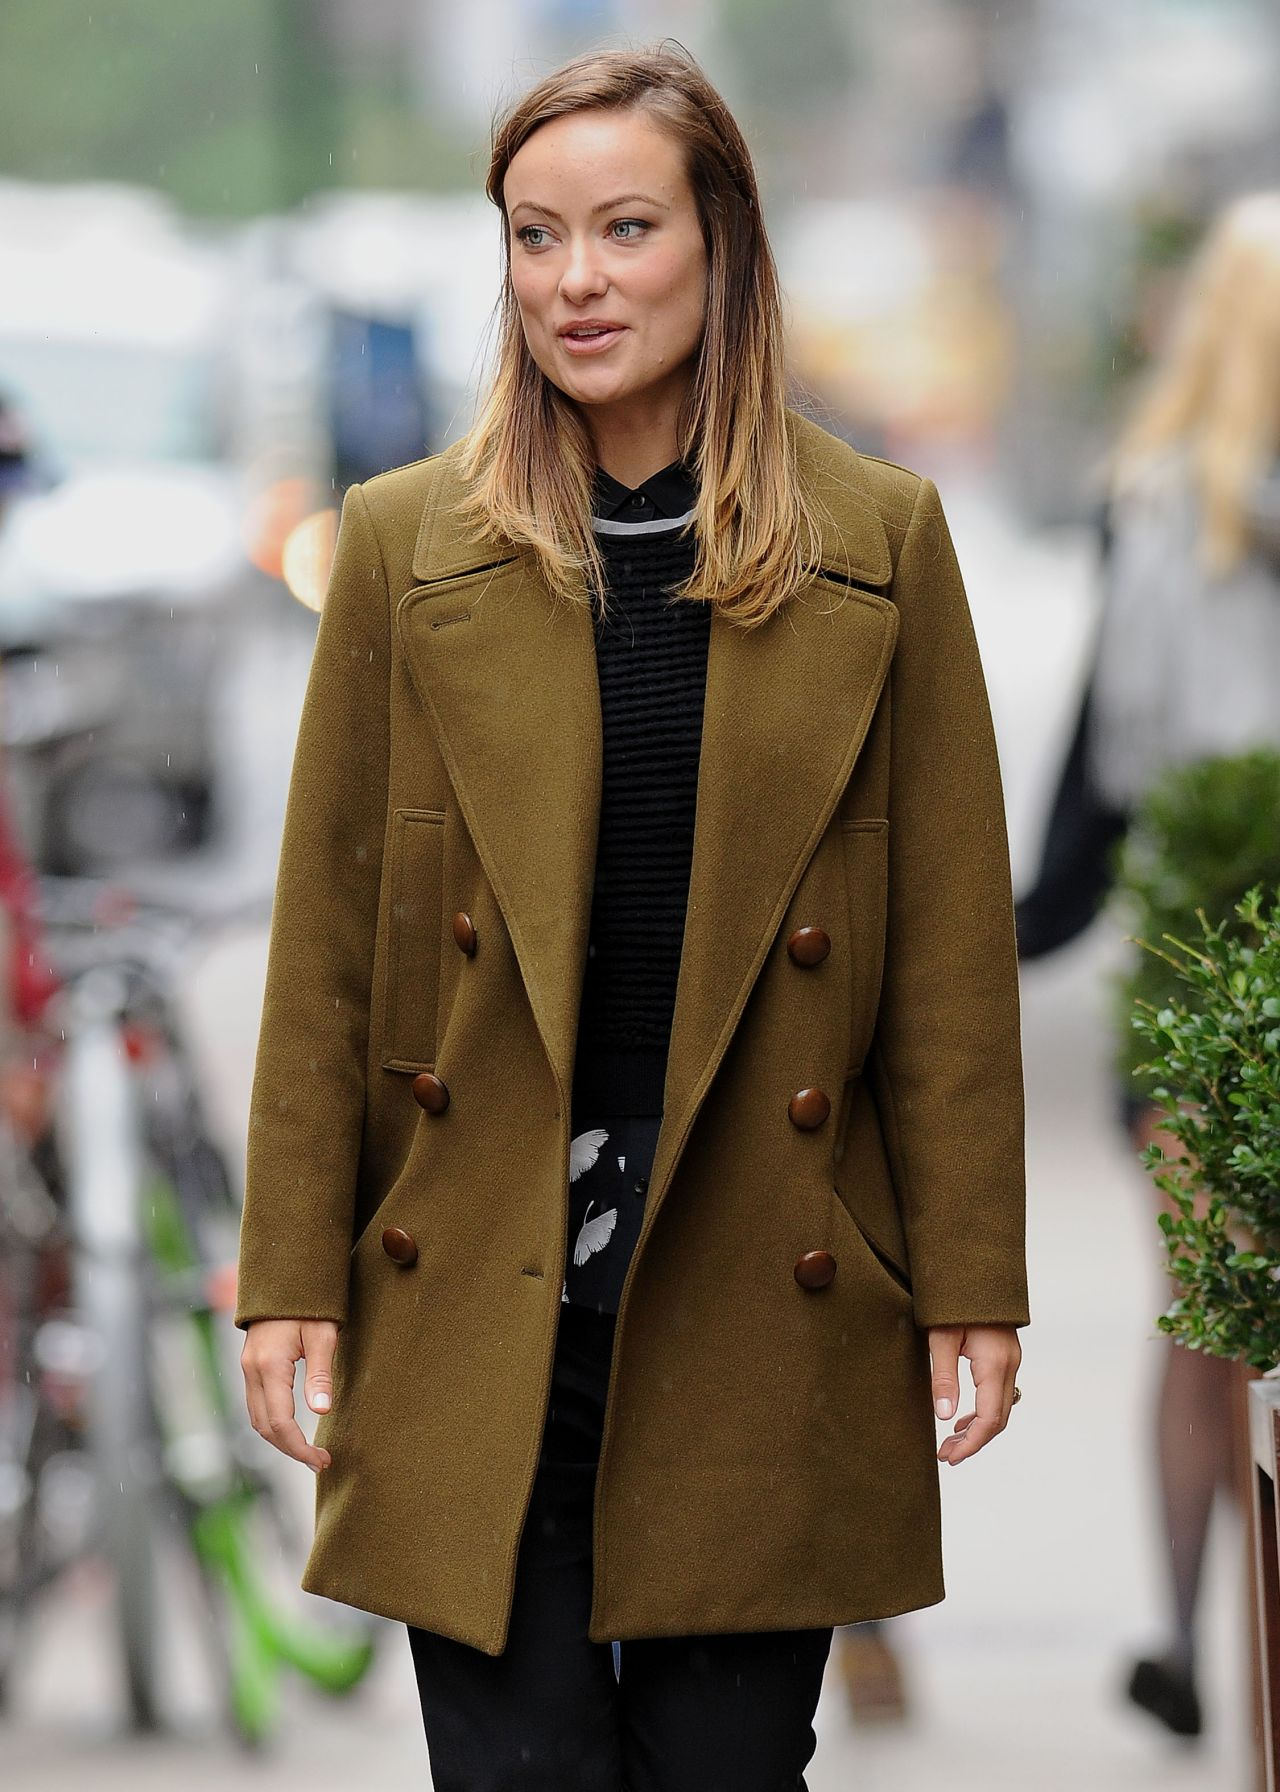 Olivia Wilde Street Style - Caught in a Rain Shower, New York City